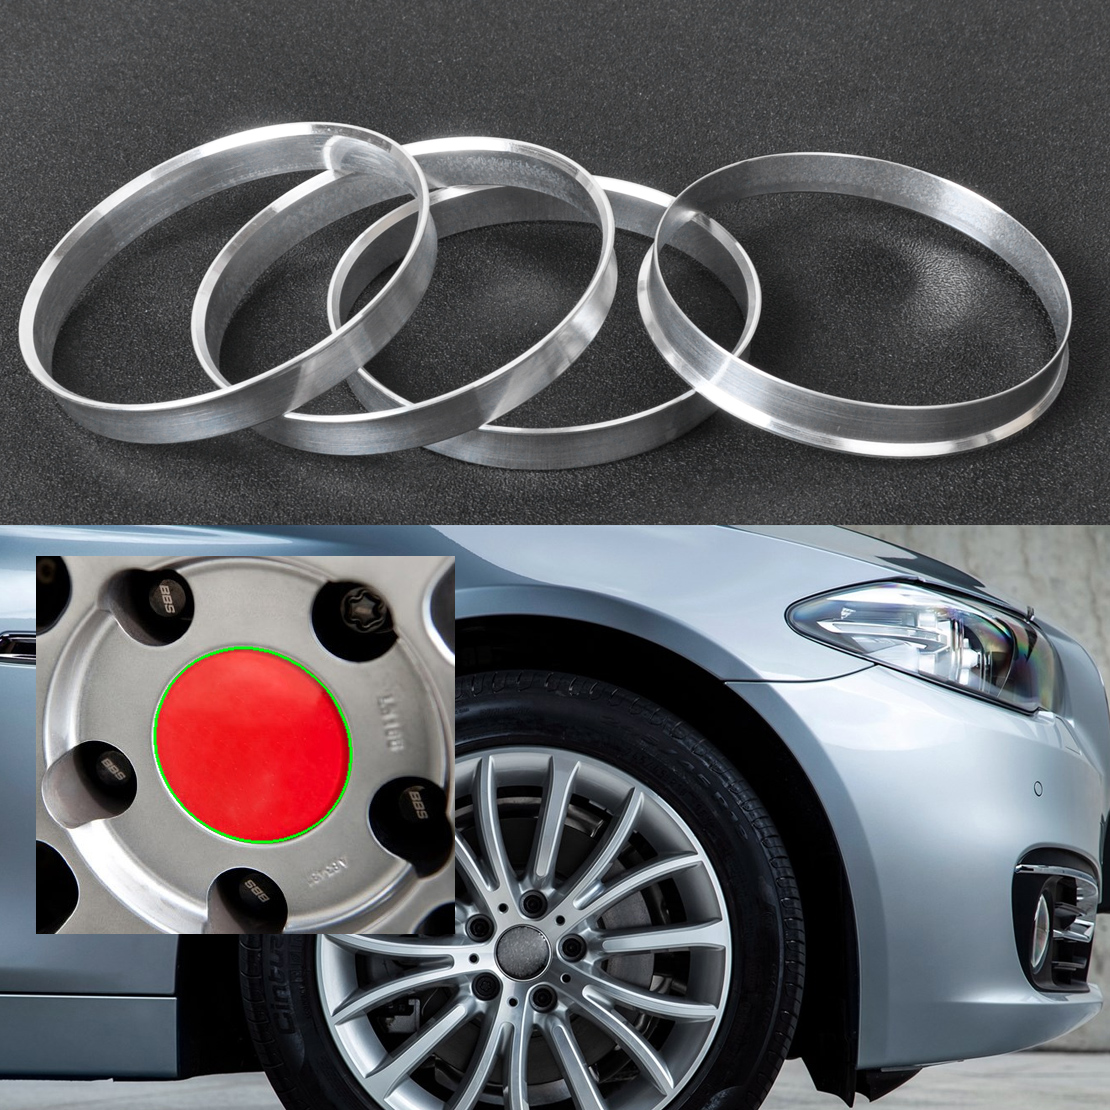 beler 4pcs Silver Aluminum Hub Rings 72.6mm Car Hub to 74.1mm Wheel Bore ID 72.56 OD 74 For BMW 1 3 4 5 7 Series X1 X3 X4 X5 X6